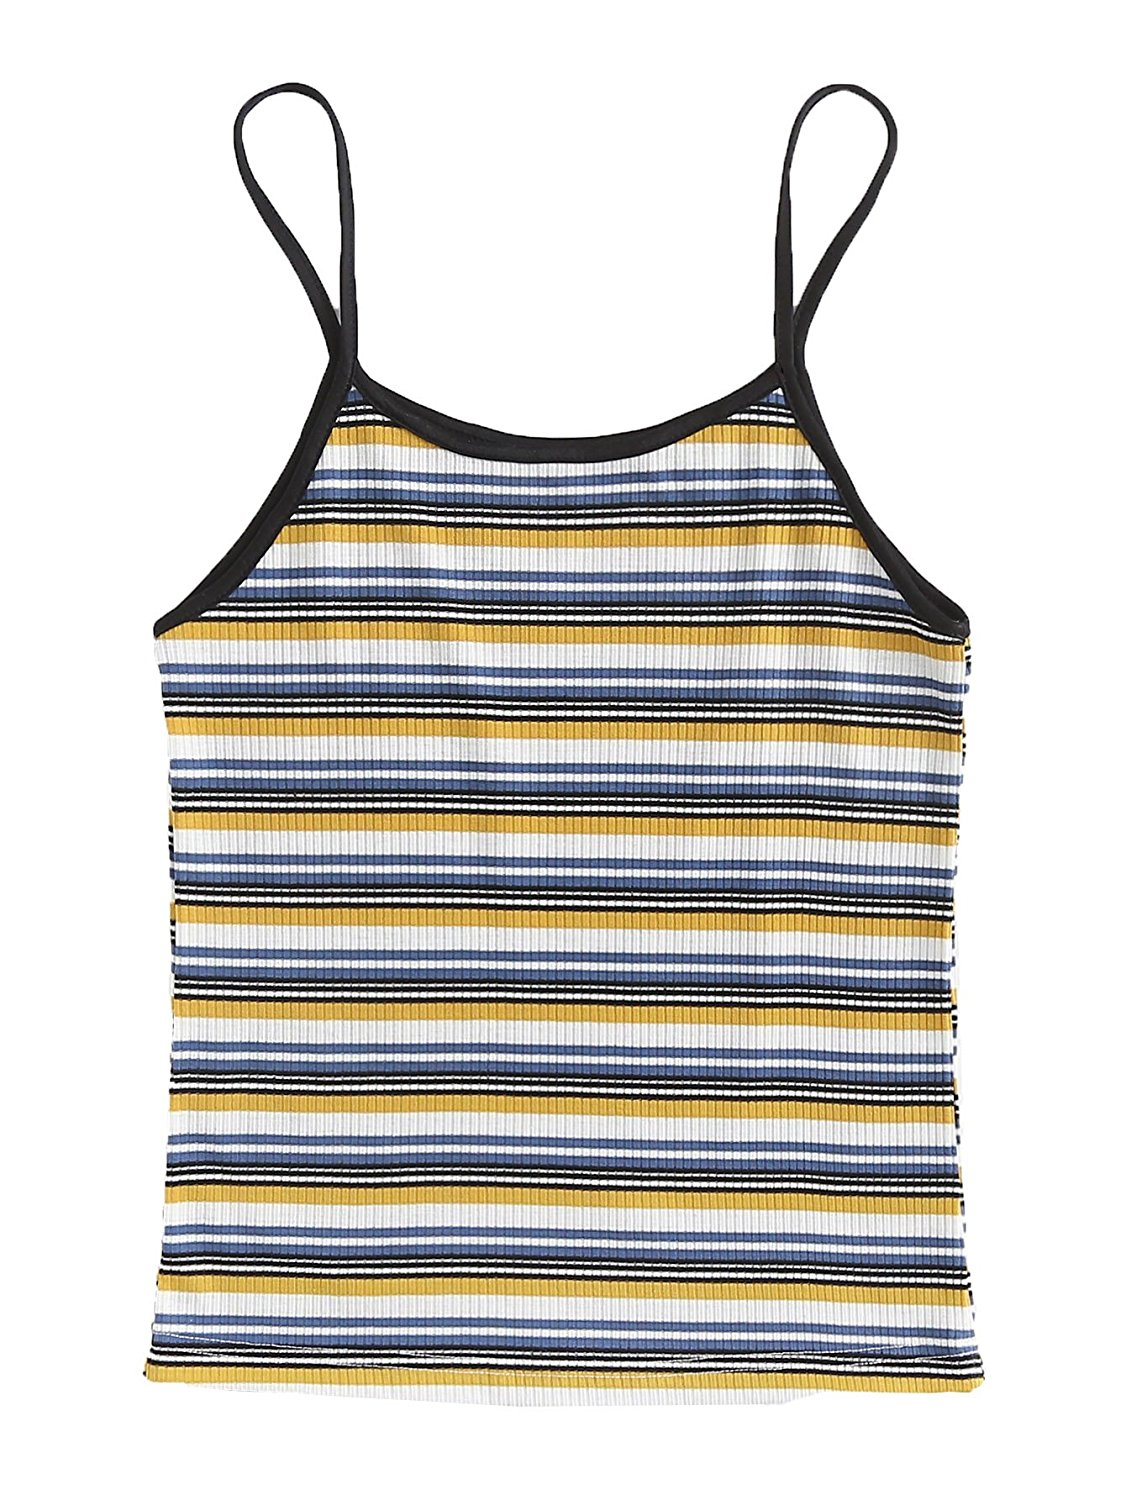 7e293ed14fe2 Get Quotations · MakeMeChic Women's Spaghetti Strap Camisole Striped  Racerback Cami Tank Tops